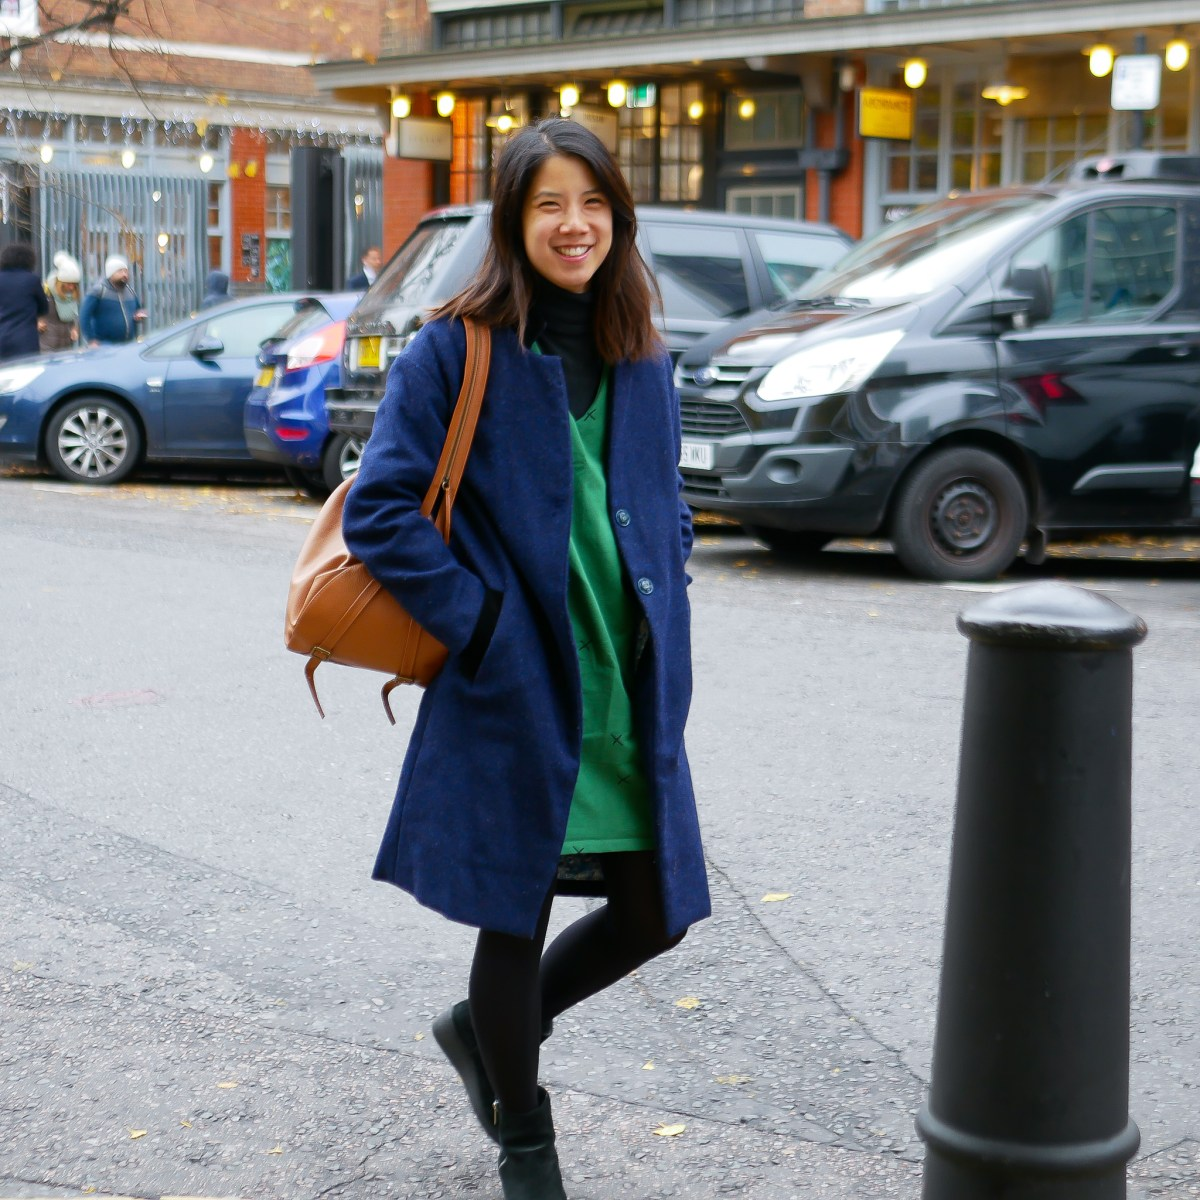 Author in NYC in self made coat and dress, smiling and happy